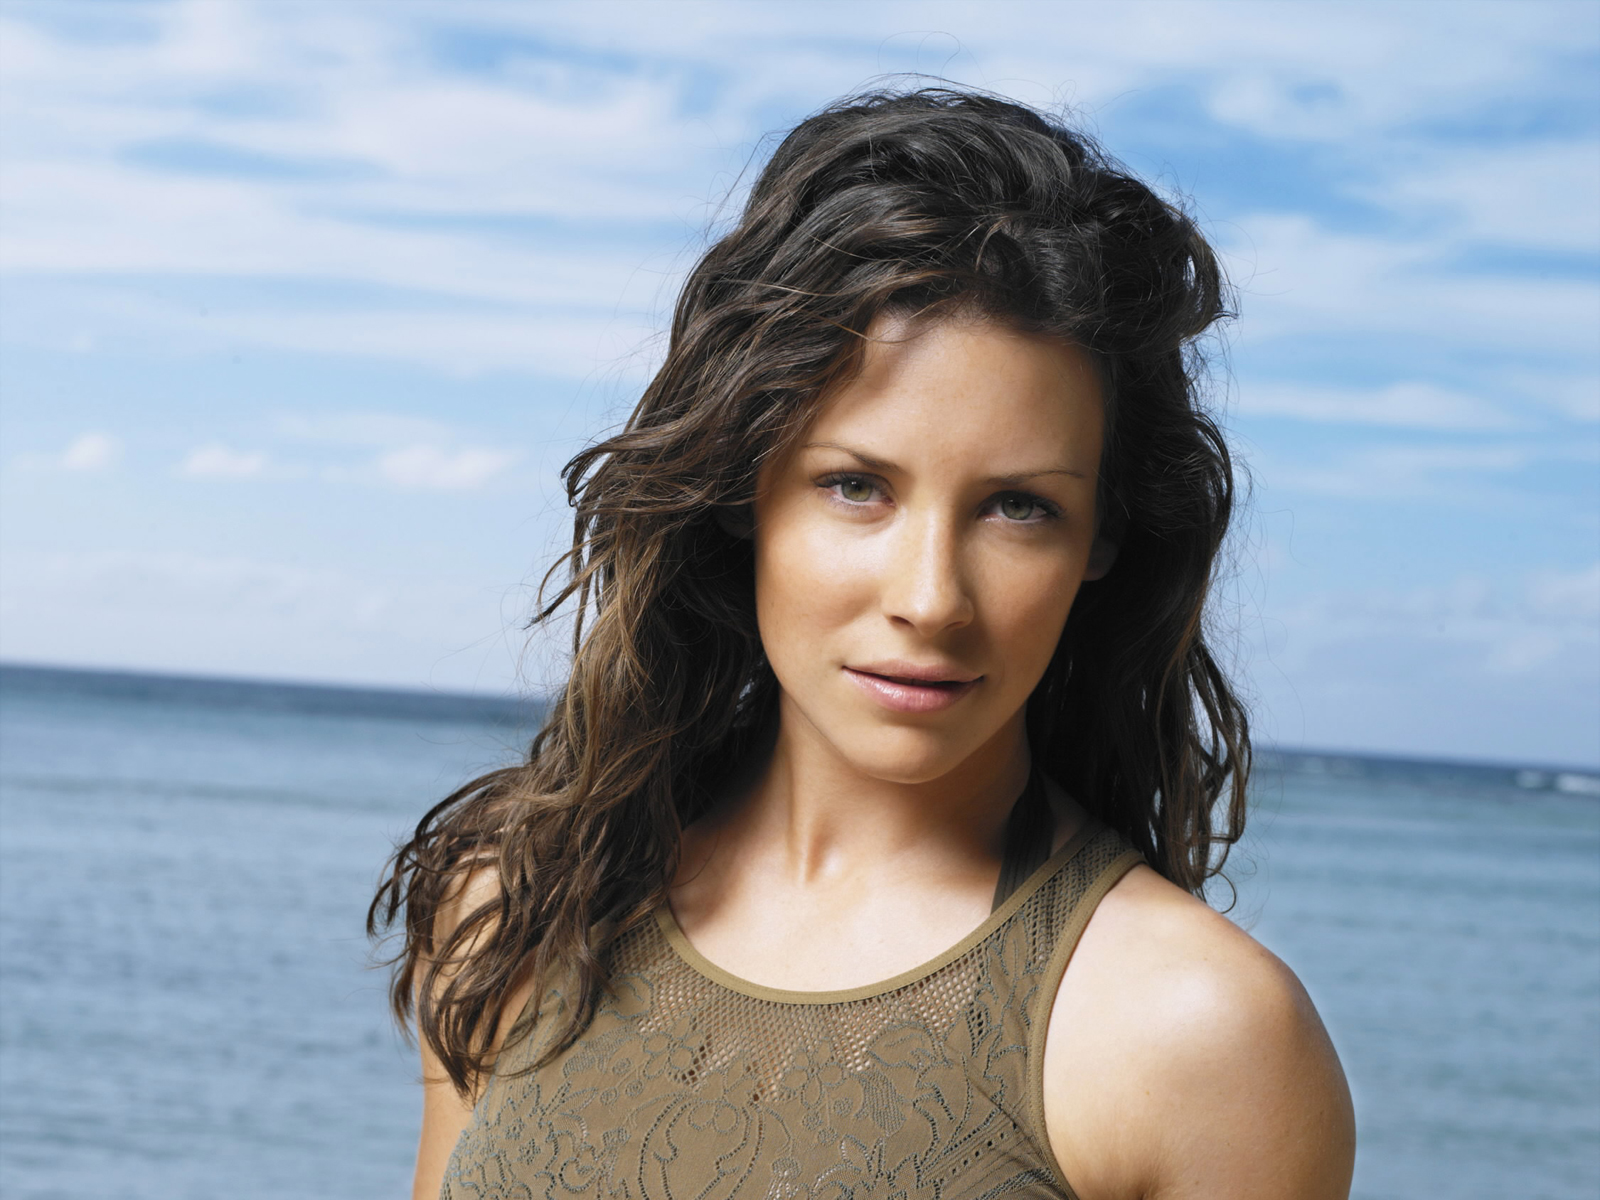 evangeline lilly wallpaper evangeline lilly wallpaper 1600x1200